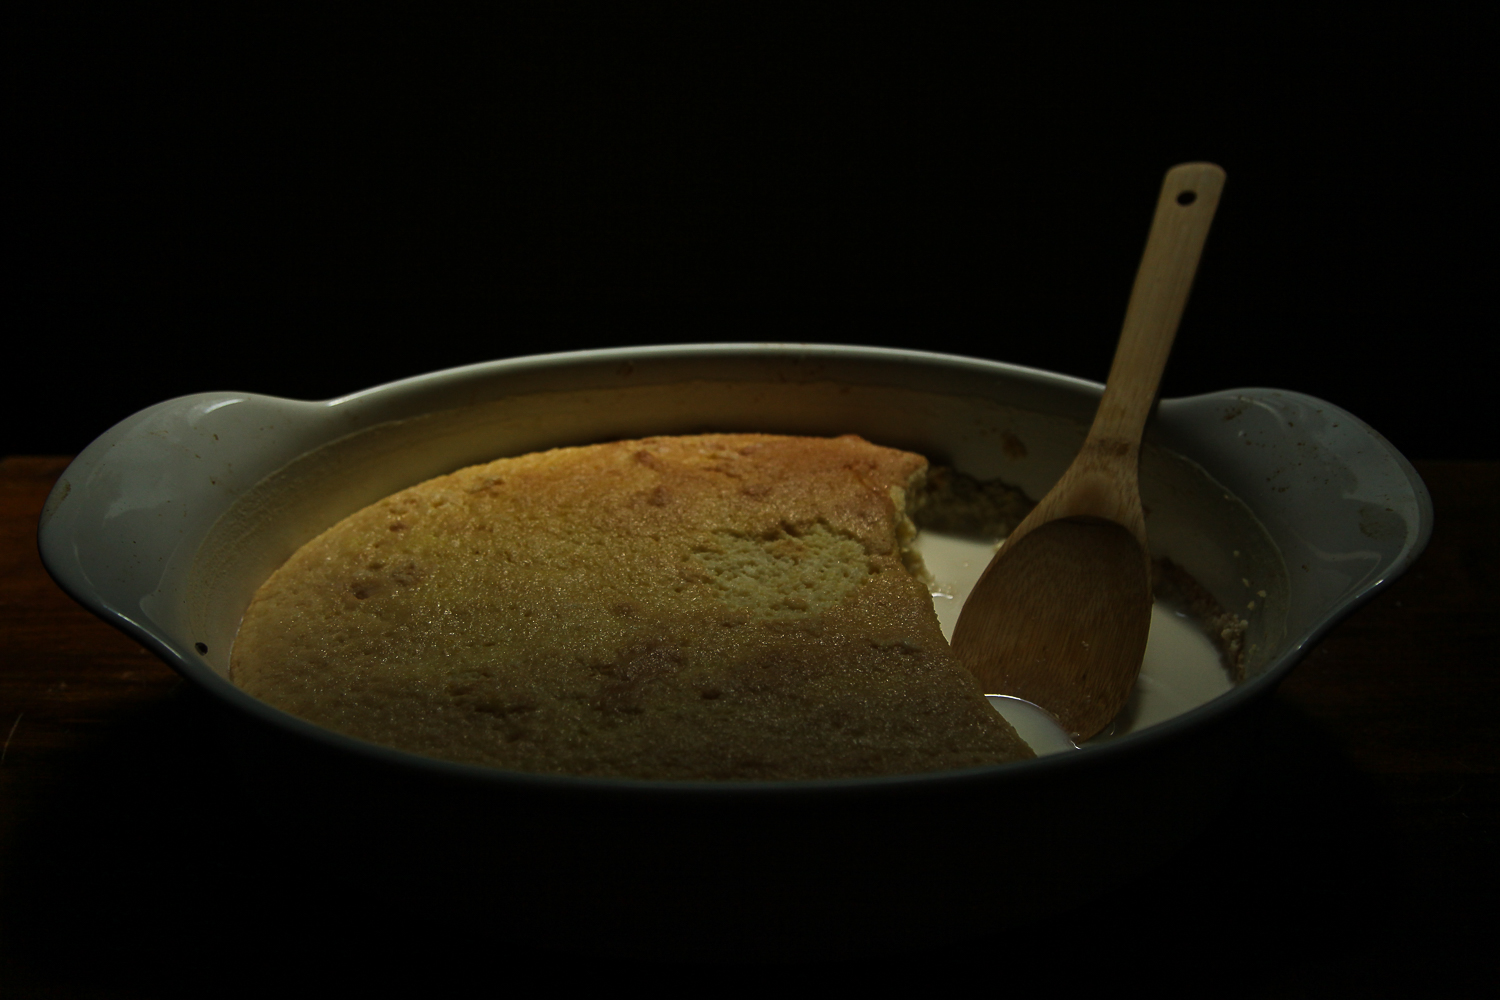 Dolce Fooda: Cream of Wheat Cake (Koh od griza)